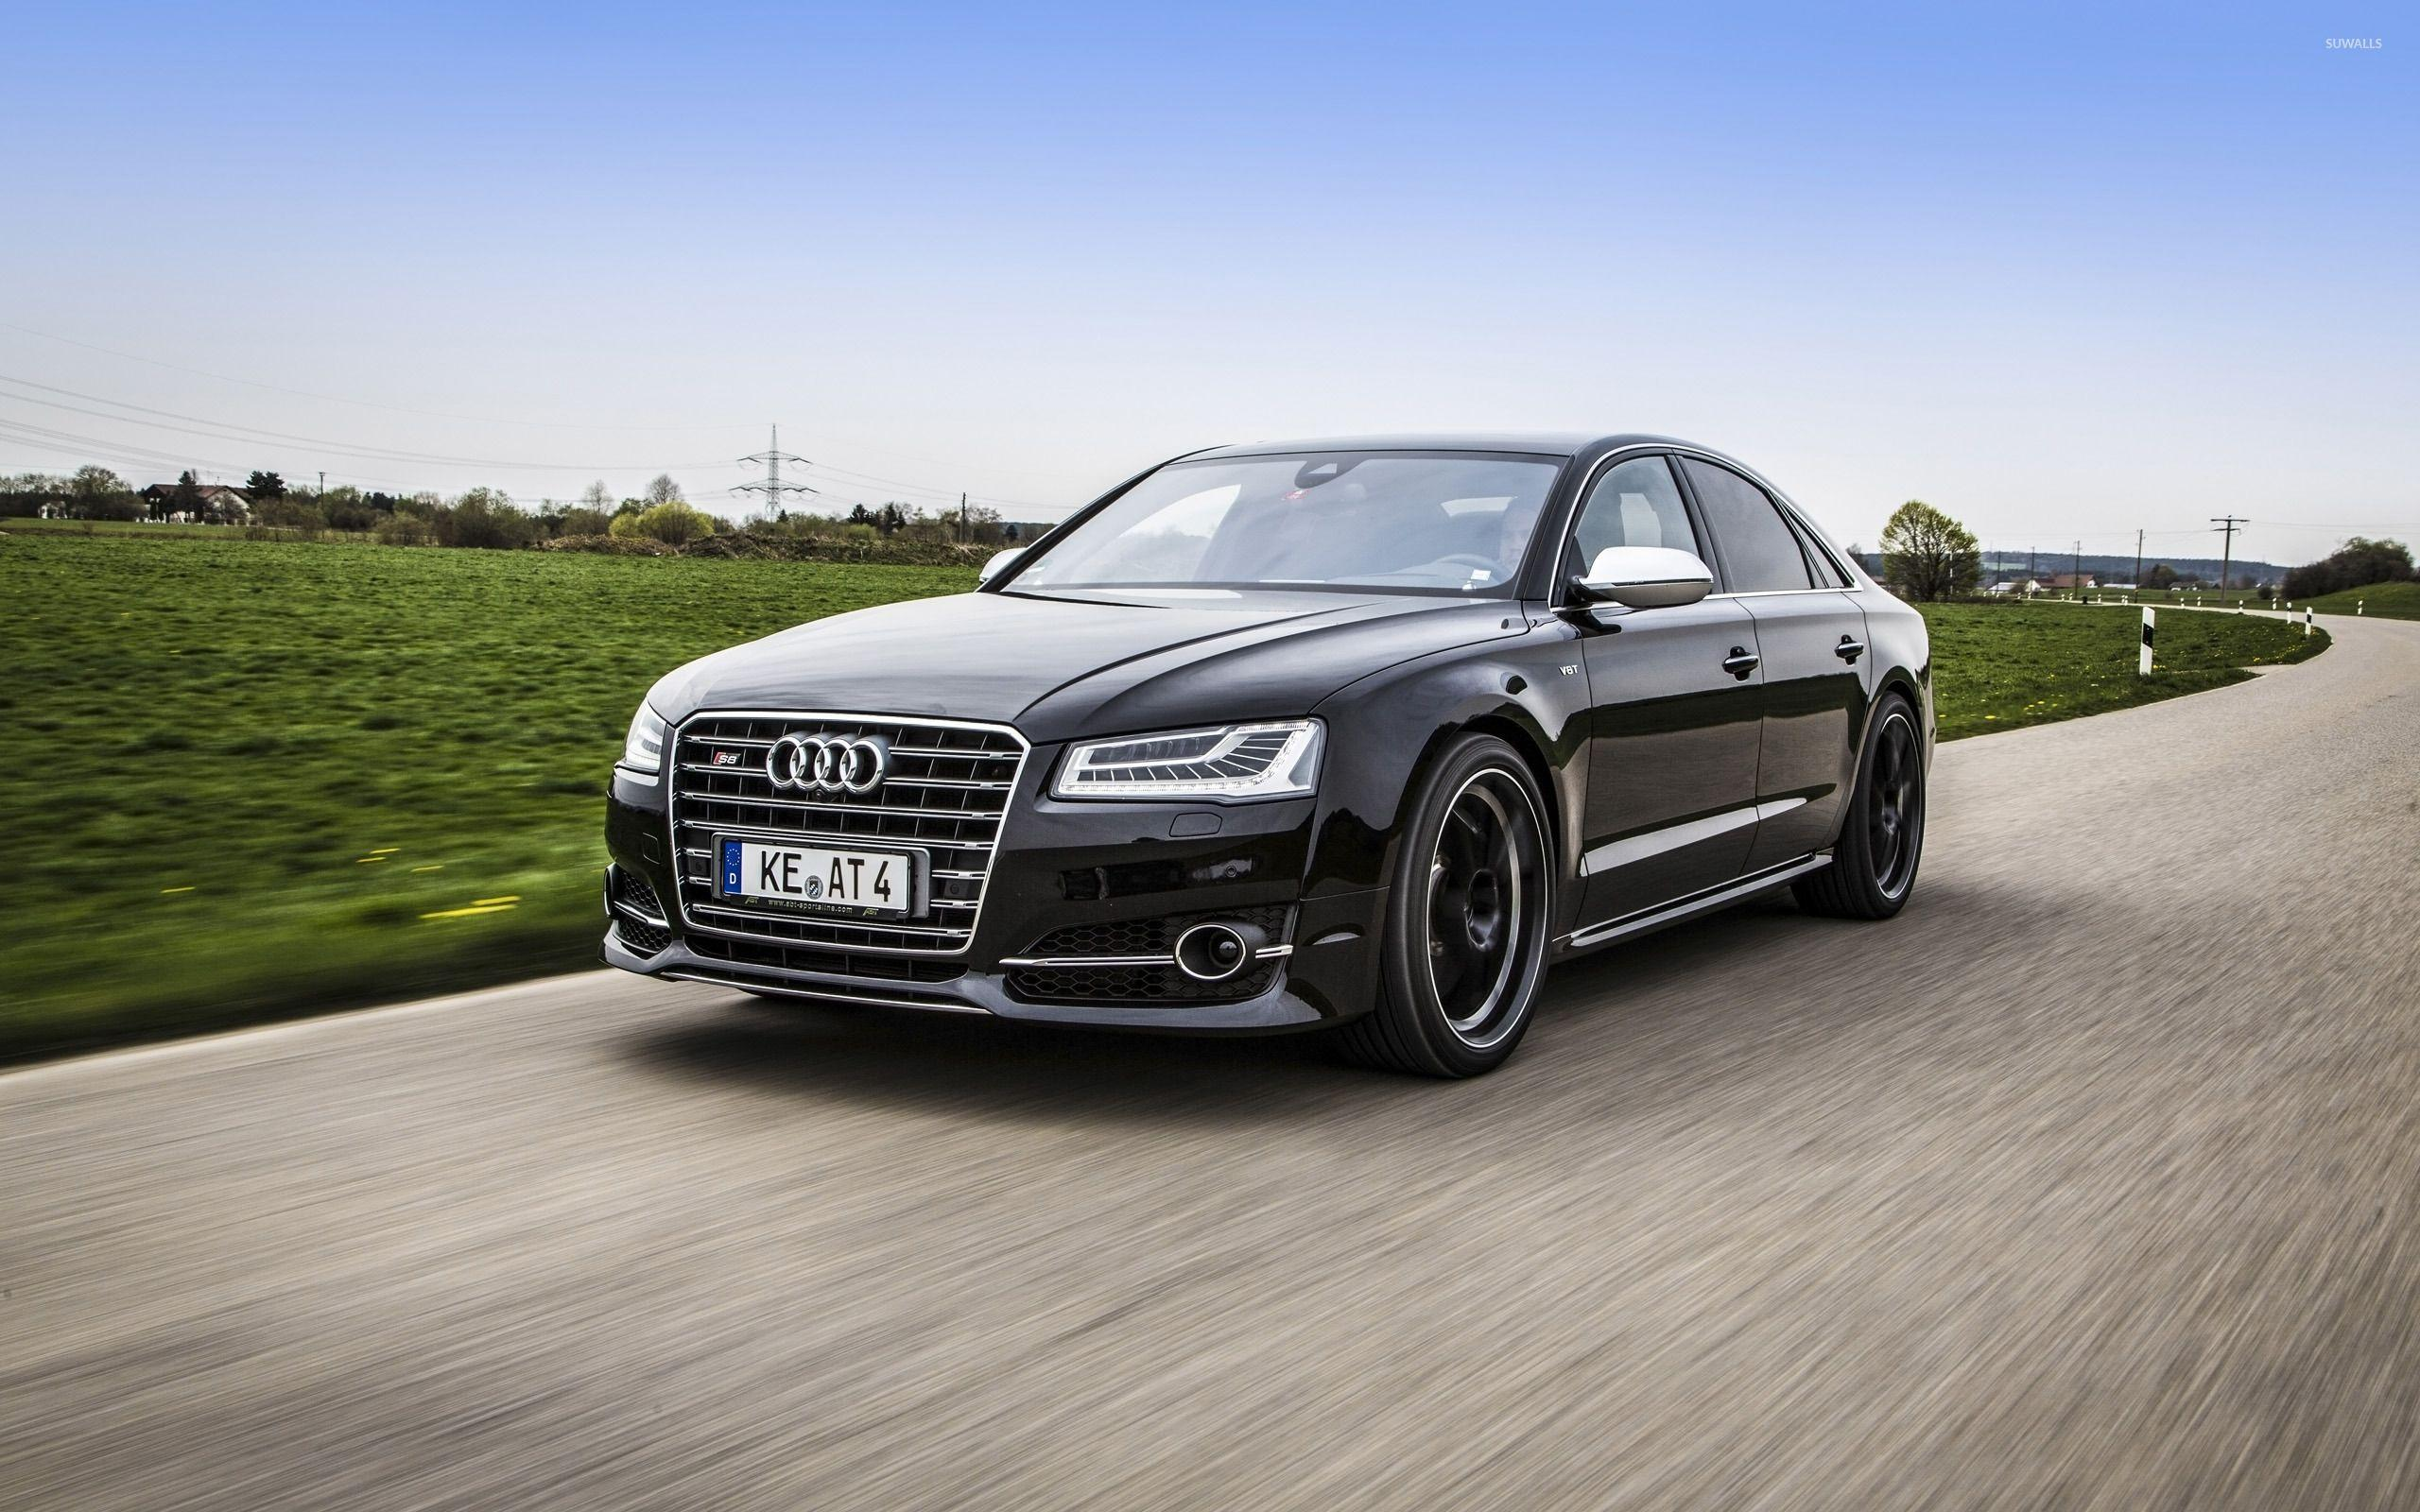 2014 ABT Audi S8 wallpapers